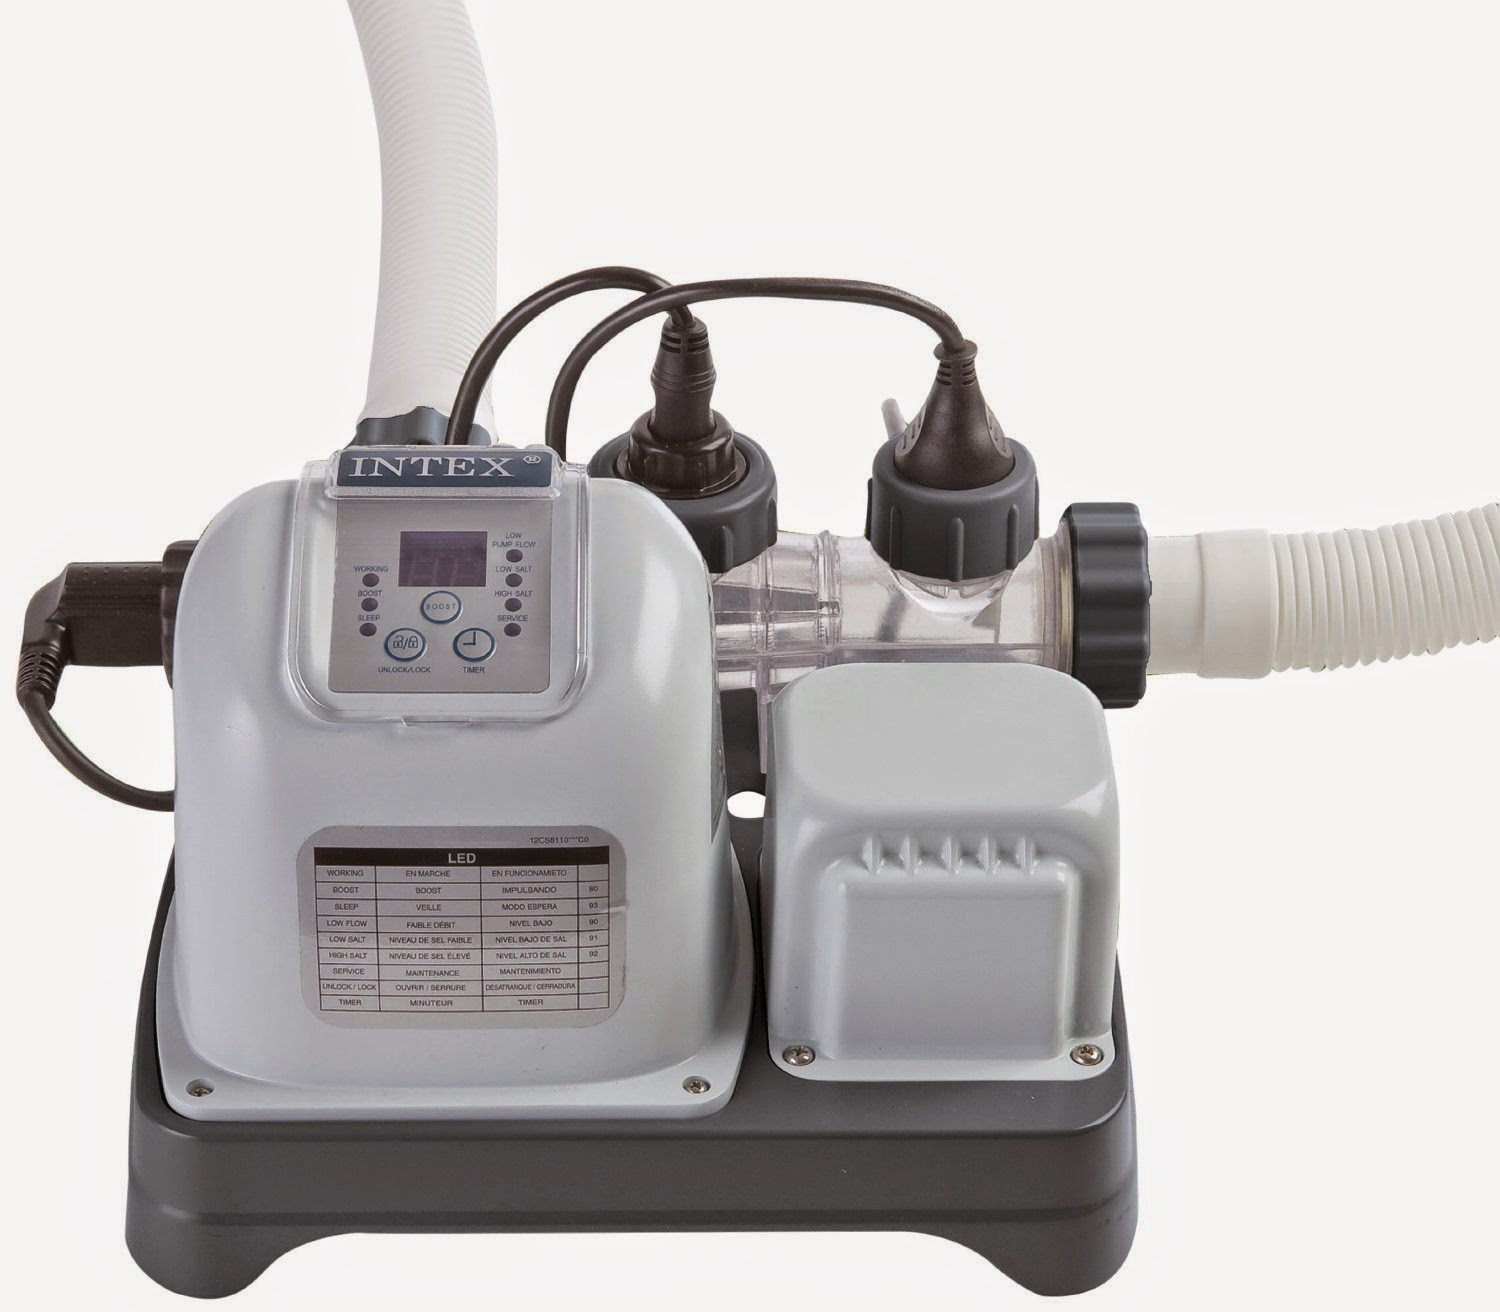 Intex Pool Pump